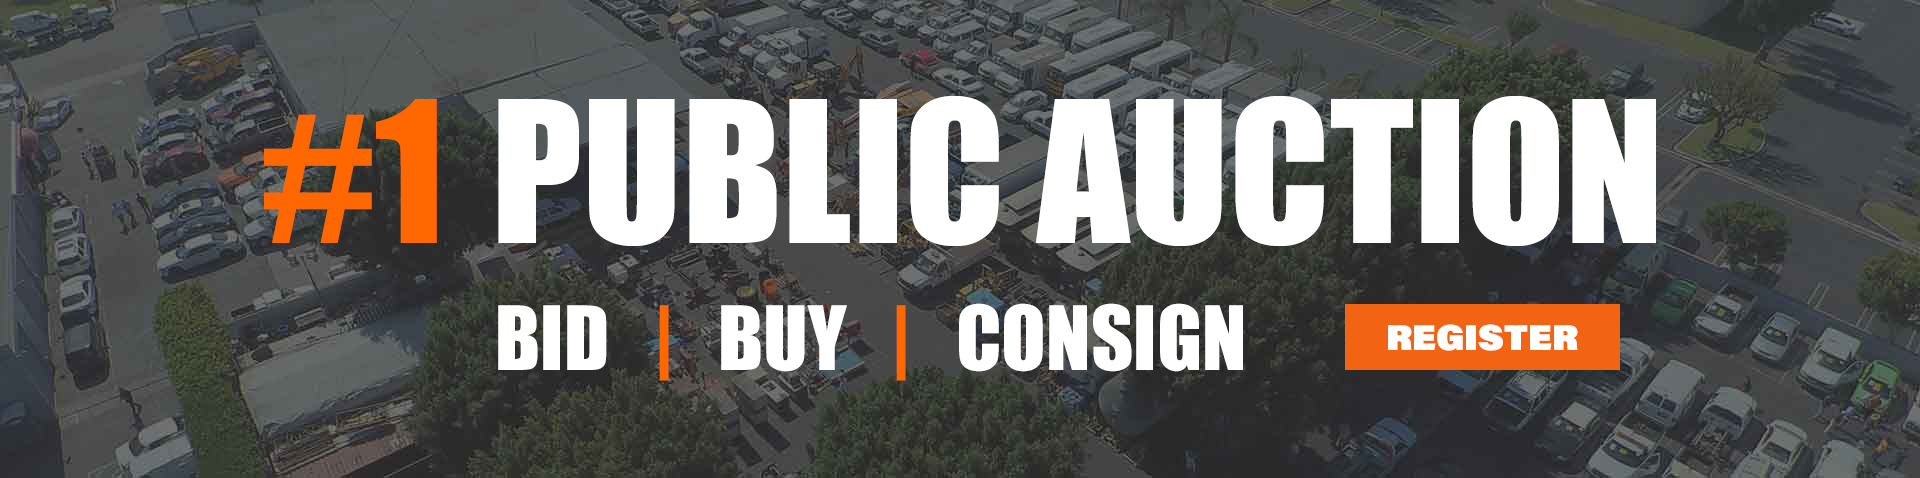 General Auction Company | Southern California's #1 Public Auction